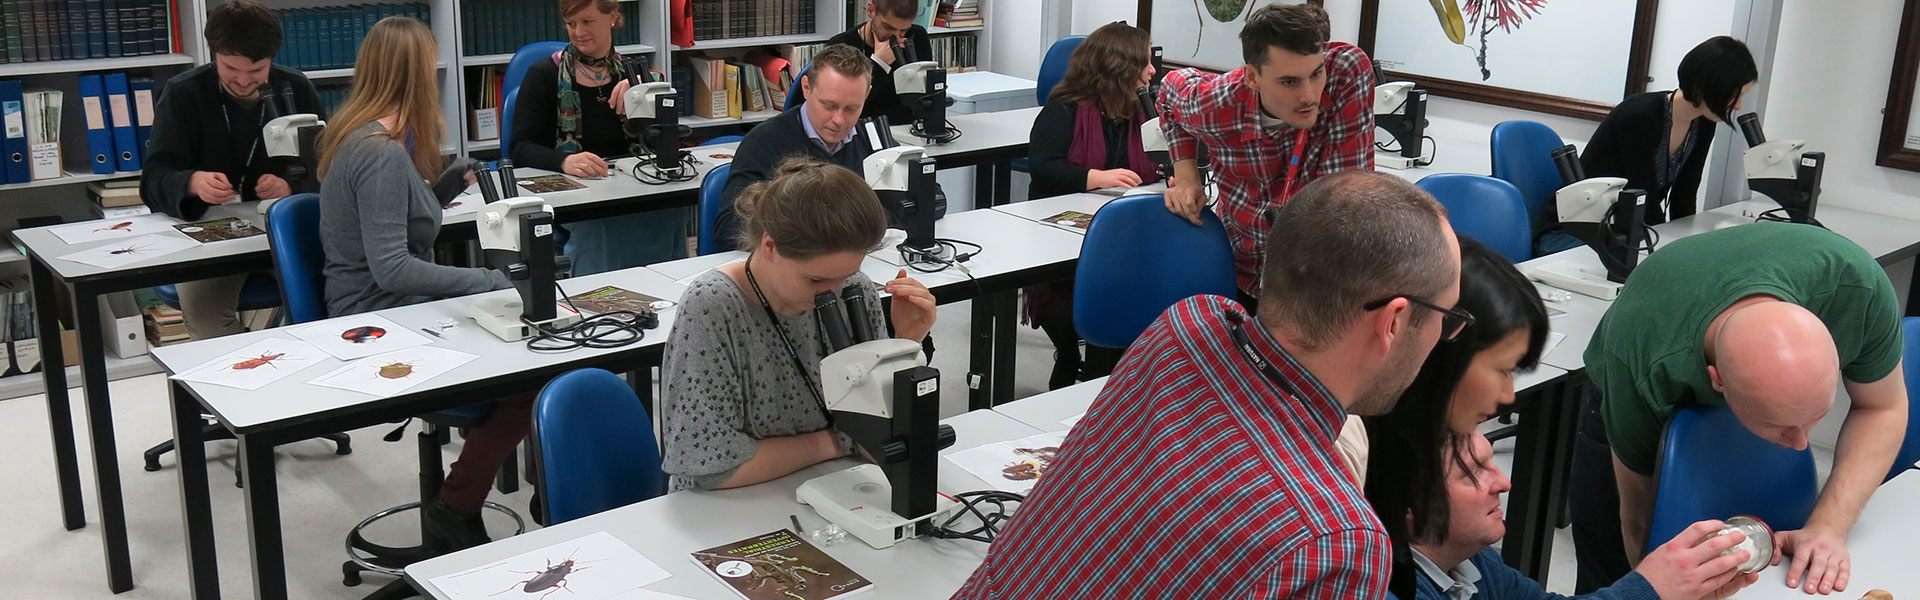 A group of people in the Angela Marmont Centre for UK Biodiversity learning to identify UK wildlife at a workshop